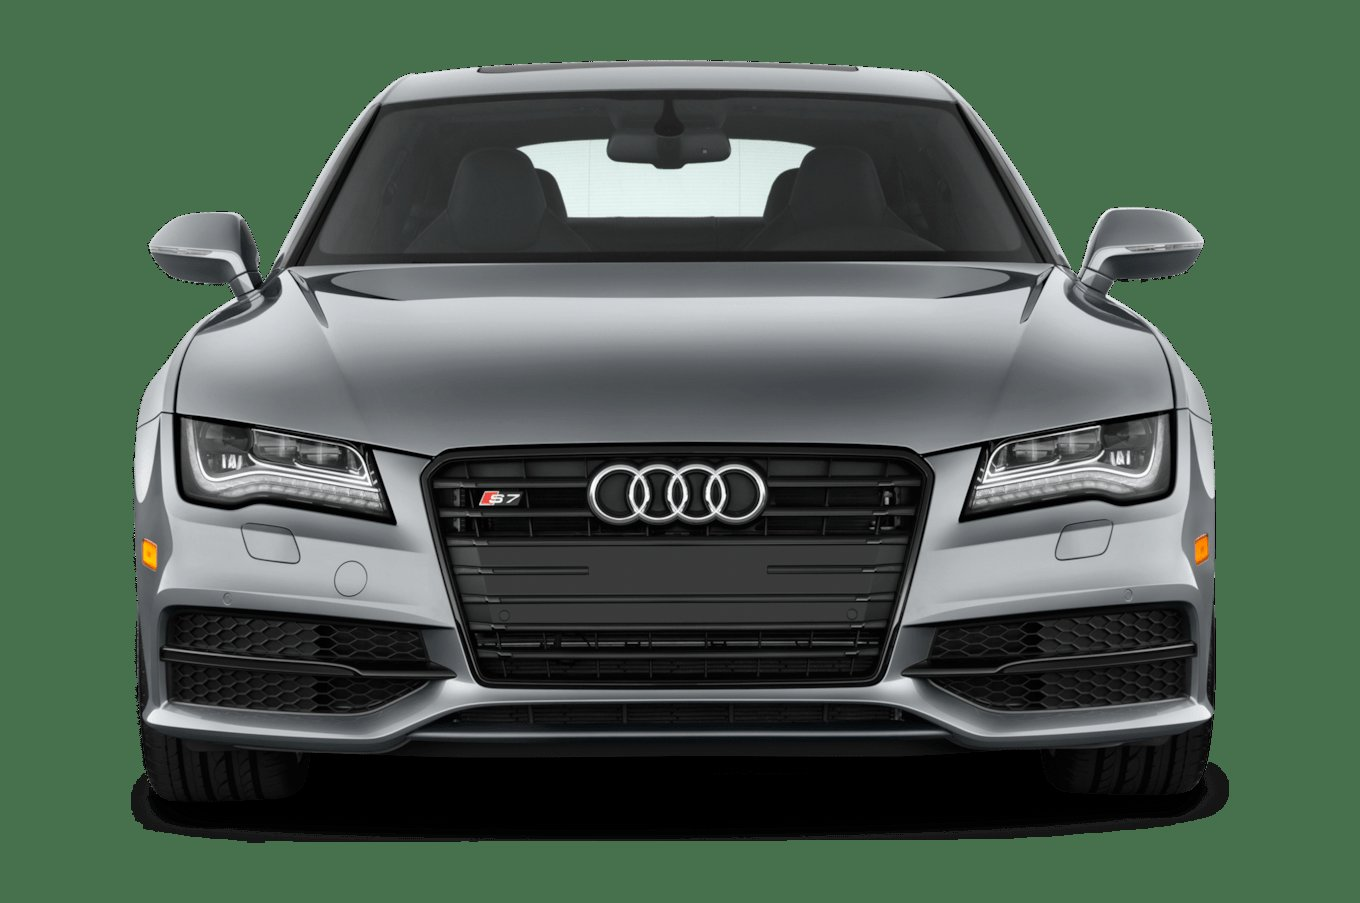 Latest 2015 Audi S7 Reviews Research S7 Prices Specs Motortrend Free Download